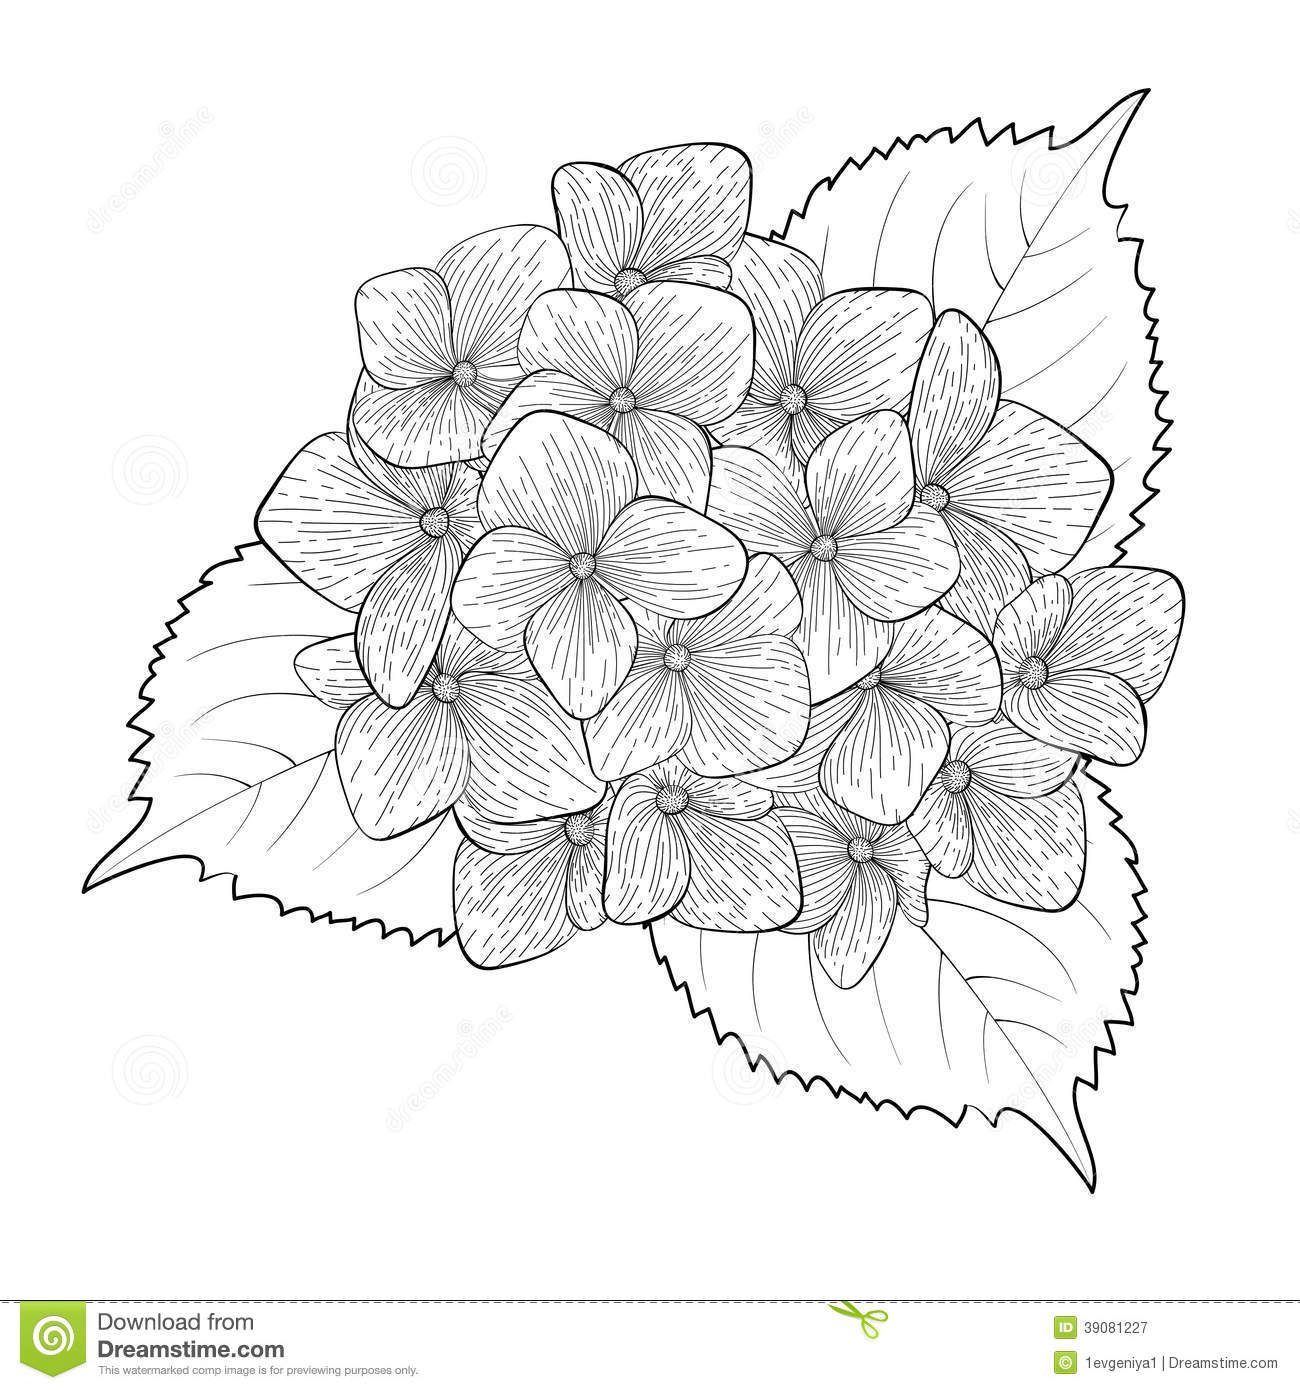 Hortensia Endless Summer Kopen Black And White Flower Hydrangea Isolated Stock Illustration Image